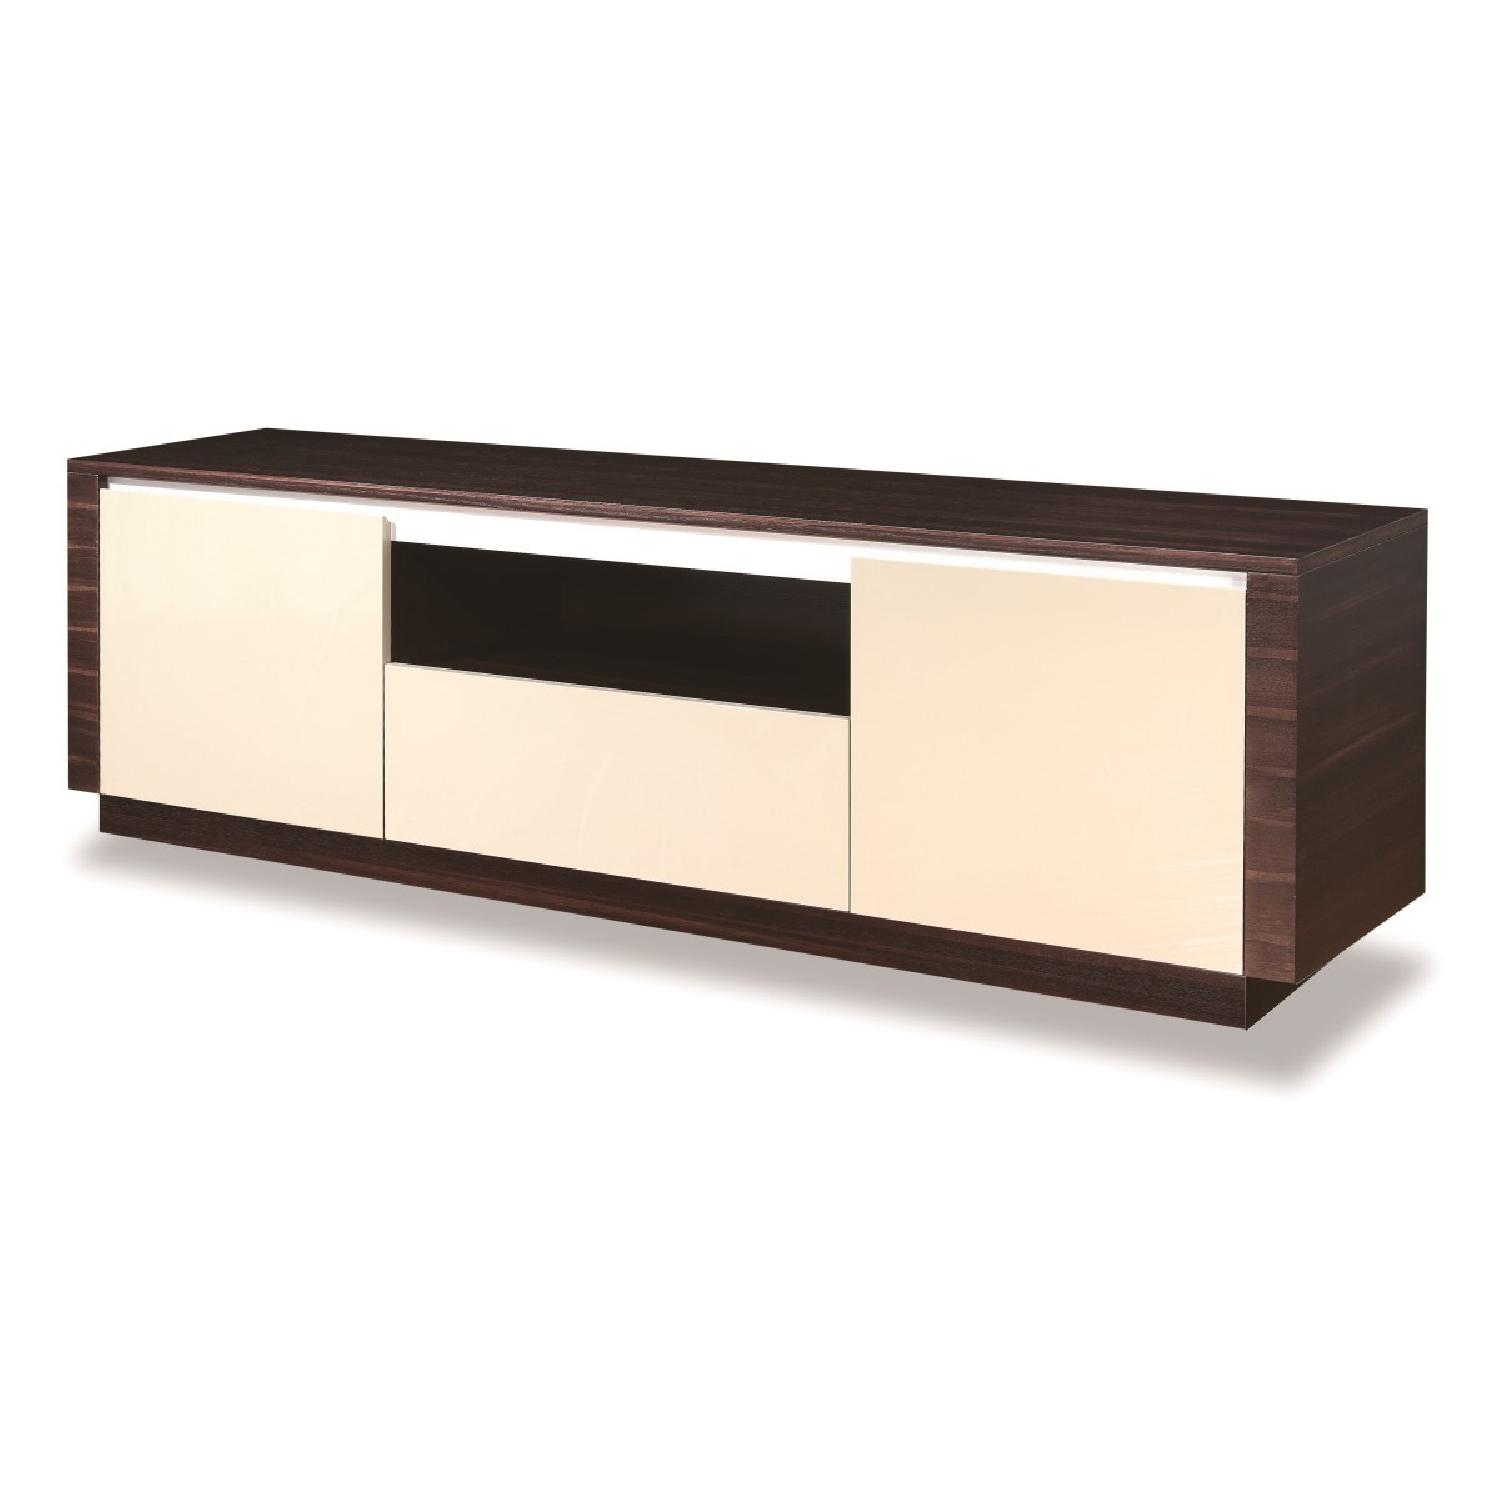 Tv Sideboard Modern Modern Style Tv Sideboard In 2 Tone Wenge Grey Gloss Finis